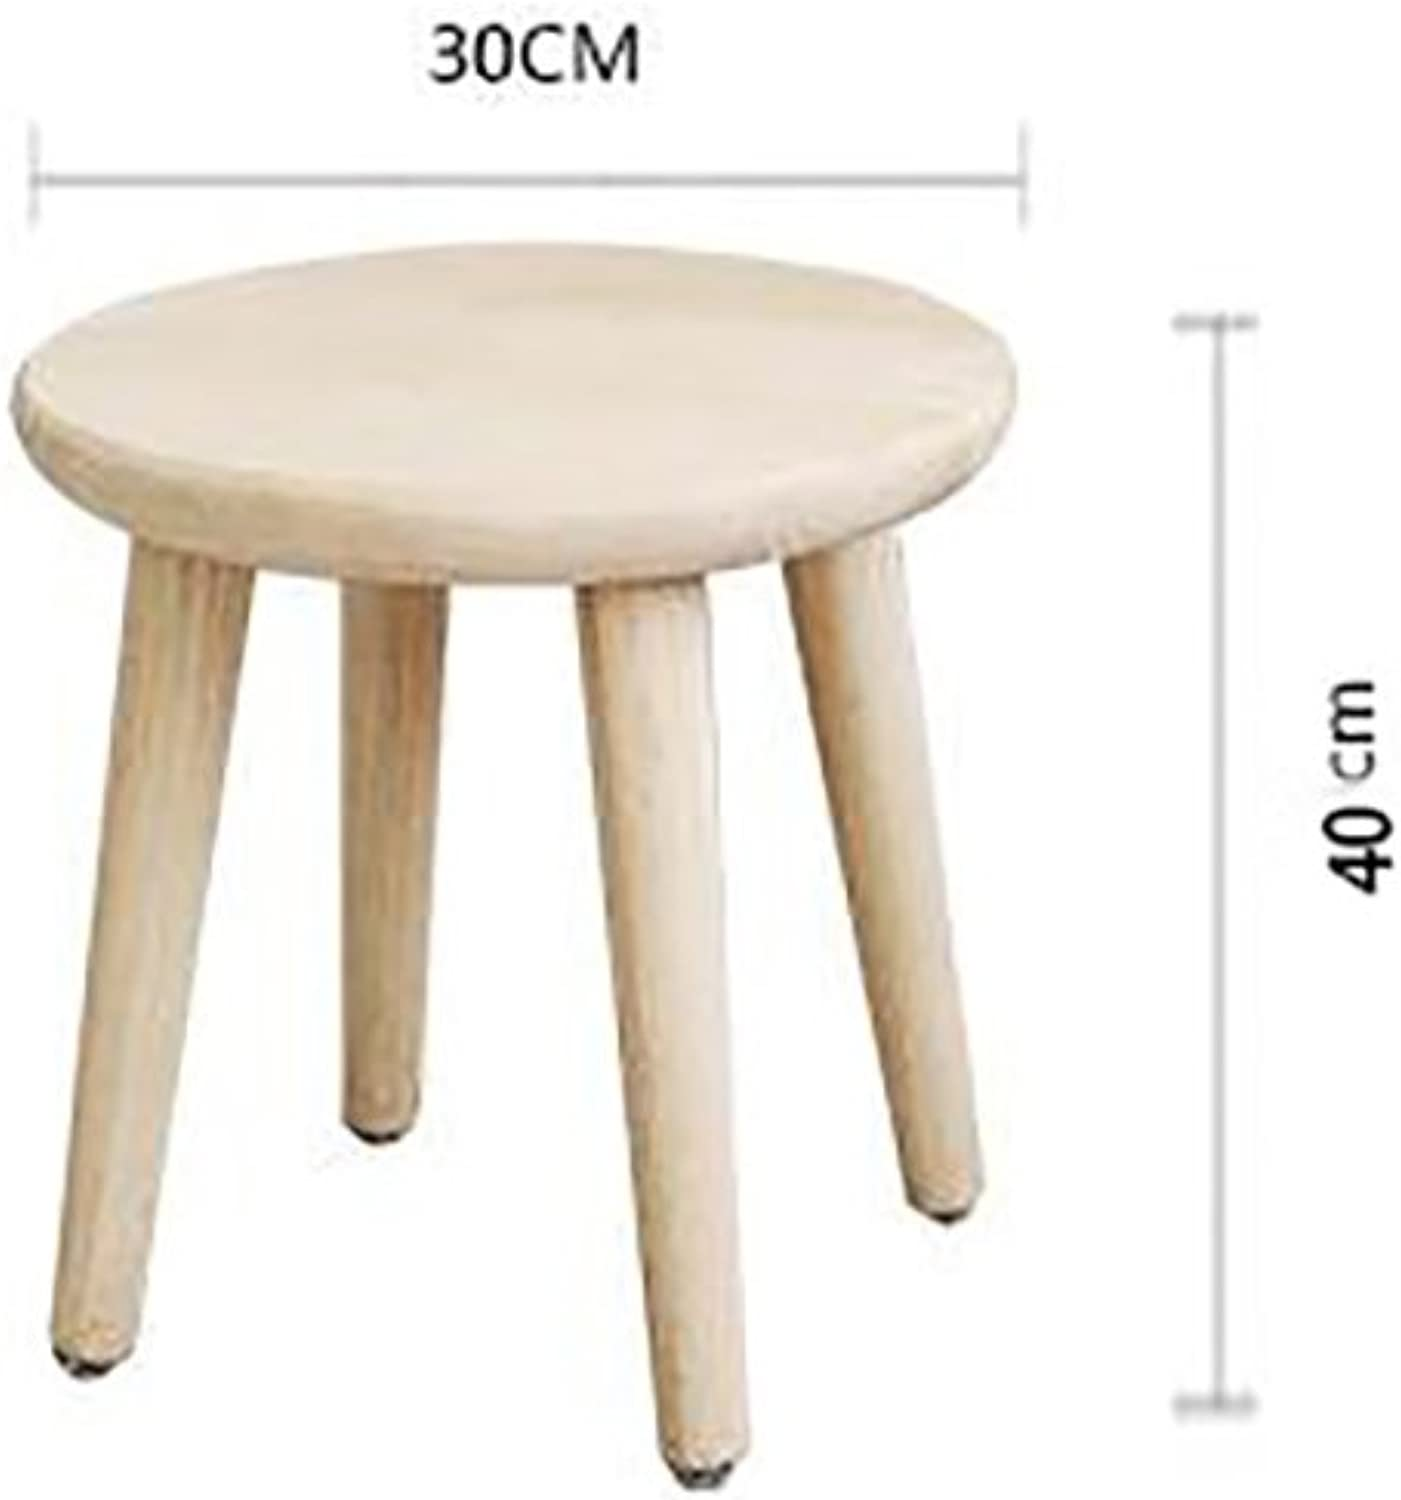 AIDELAI Bar Stool Chair- Nordic Wood Comb Makeup Stool Stool Stool Changing His shoes to Wear Adult Household Cloth Stool Meal Stool Fashion Creative Computer Saddle Seat (Size   40cm)